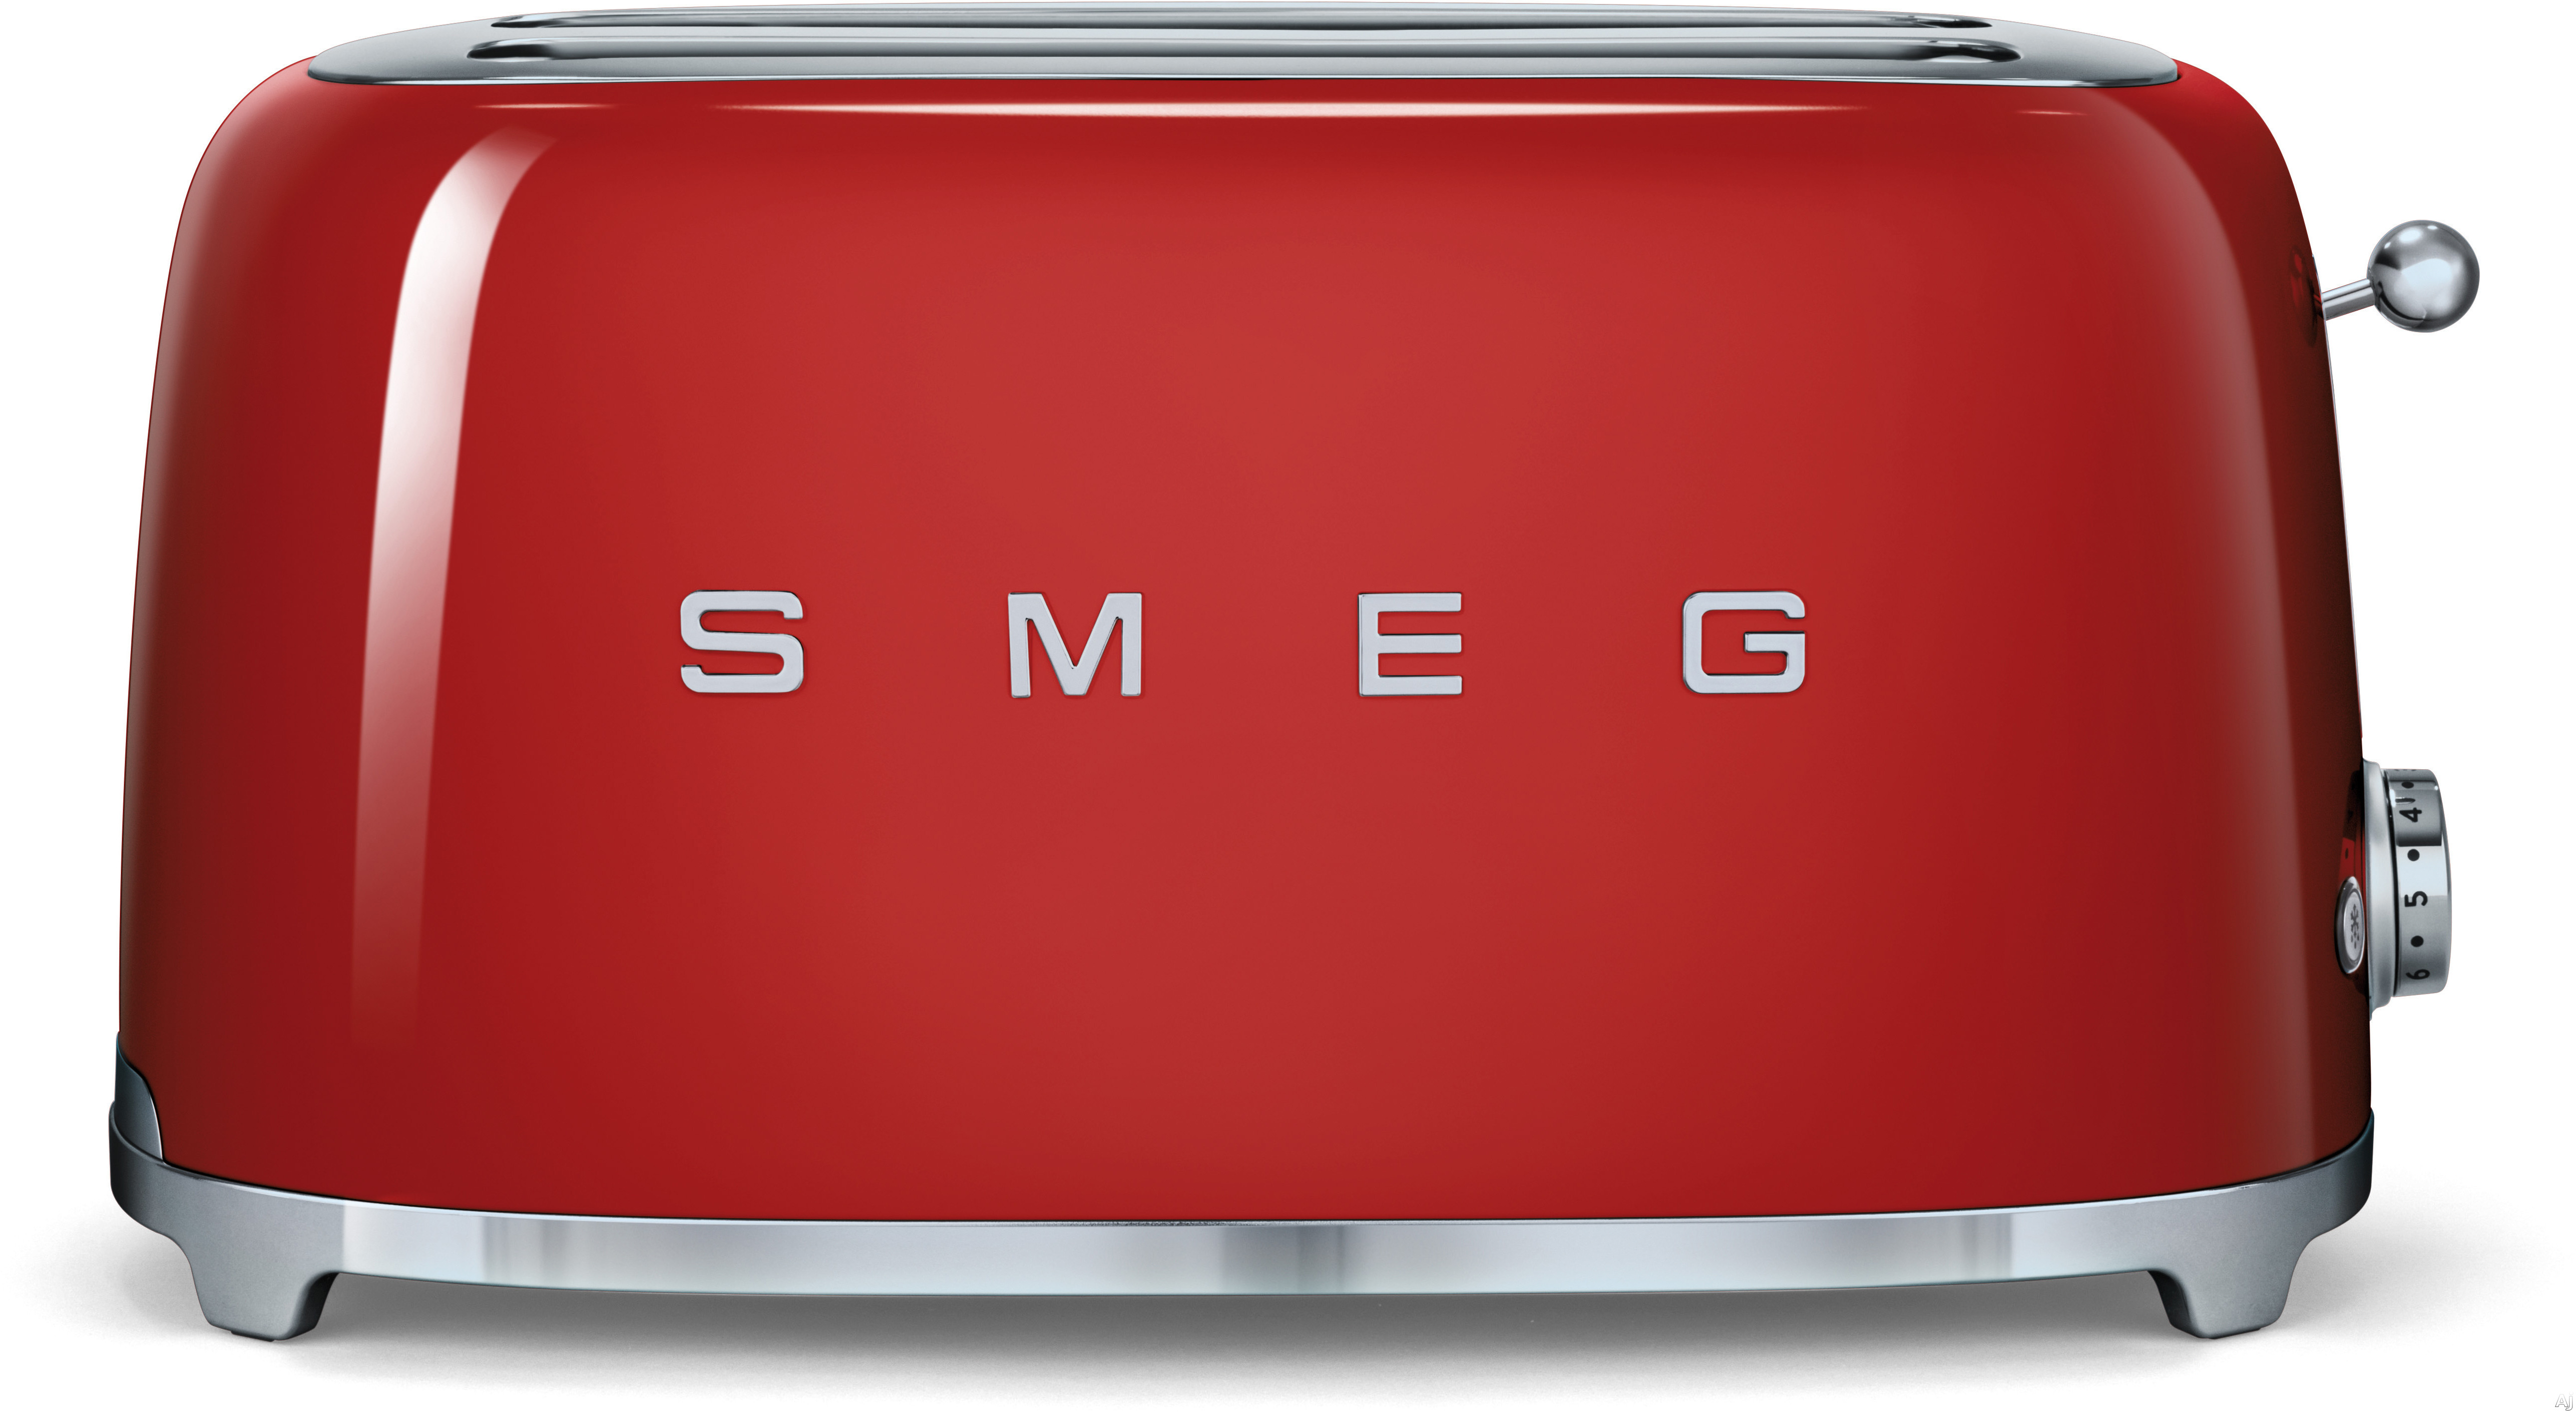 Smeg 50 s Retro Design TSF02 Countertop Toaster with 4 Slice Capacity Defrost Setting Bagel Setting Self Centering Racks Automatic Slice Pop Up and Stainless Steel Crumb Tray